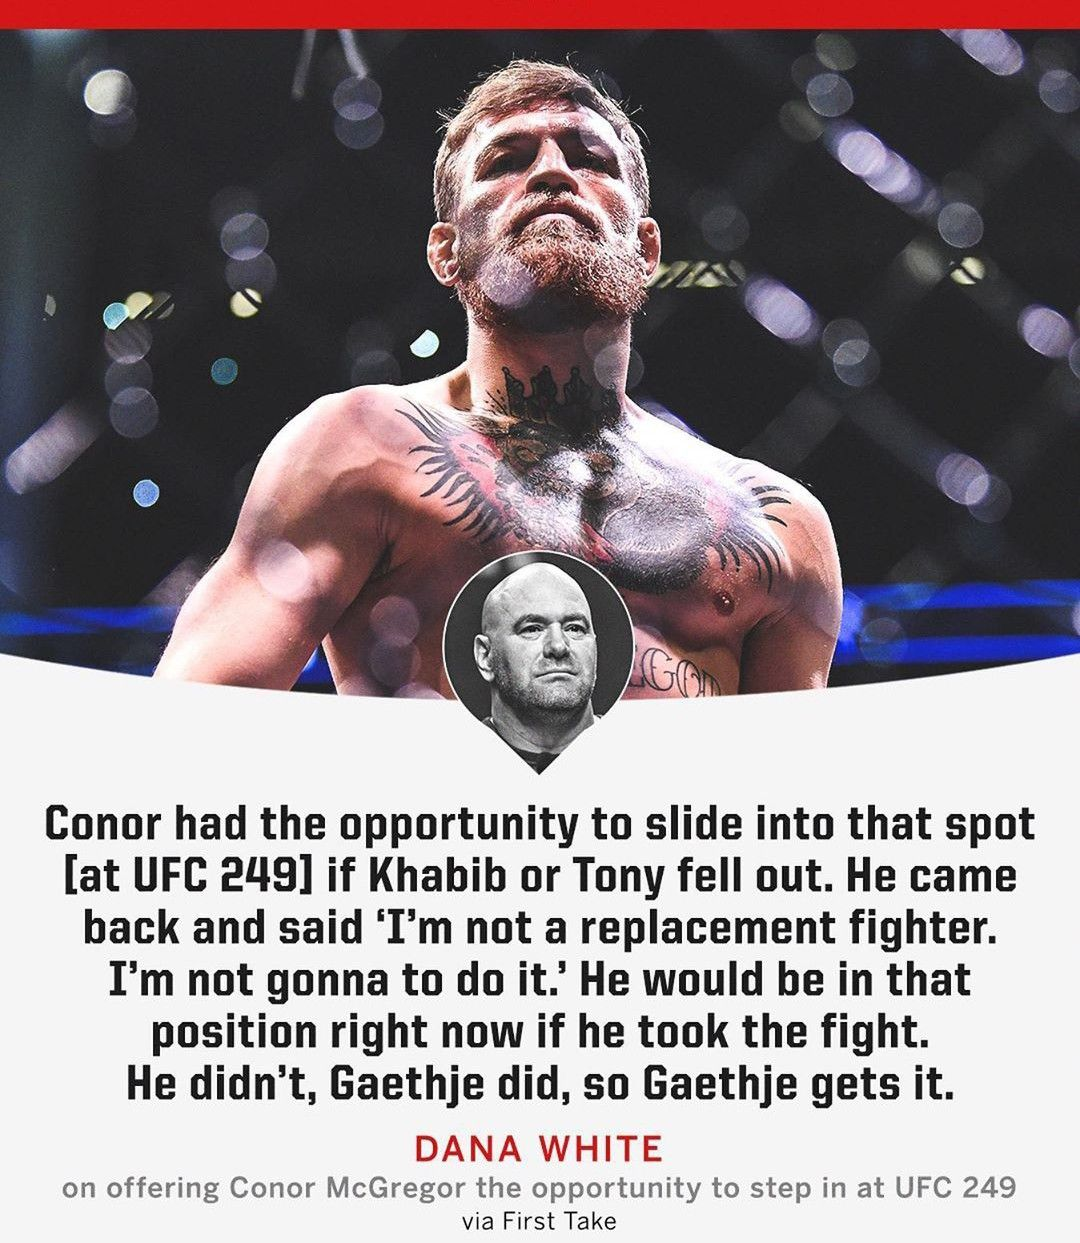 Pin by JUST SAYING on fight world in 2020 Ufc, Comebacks